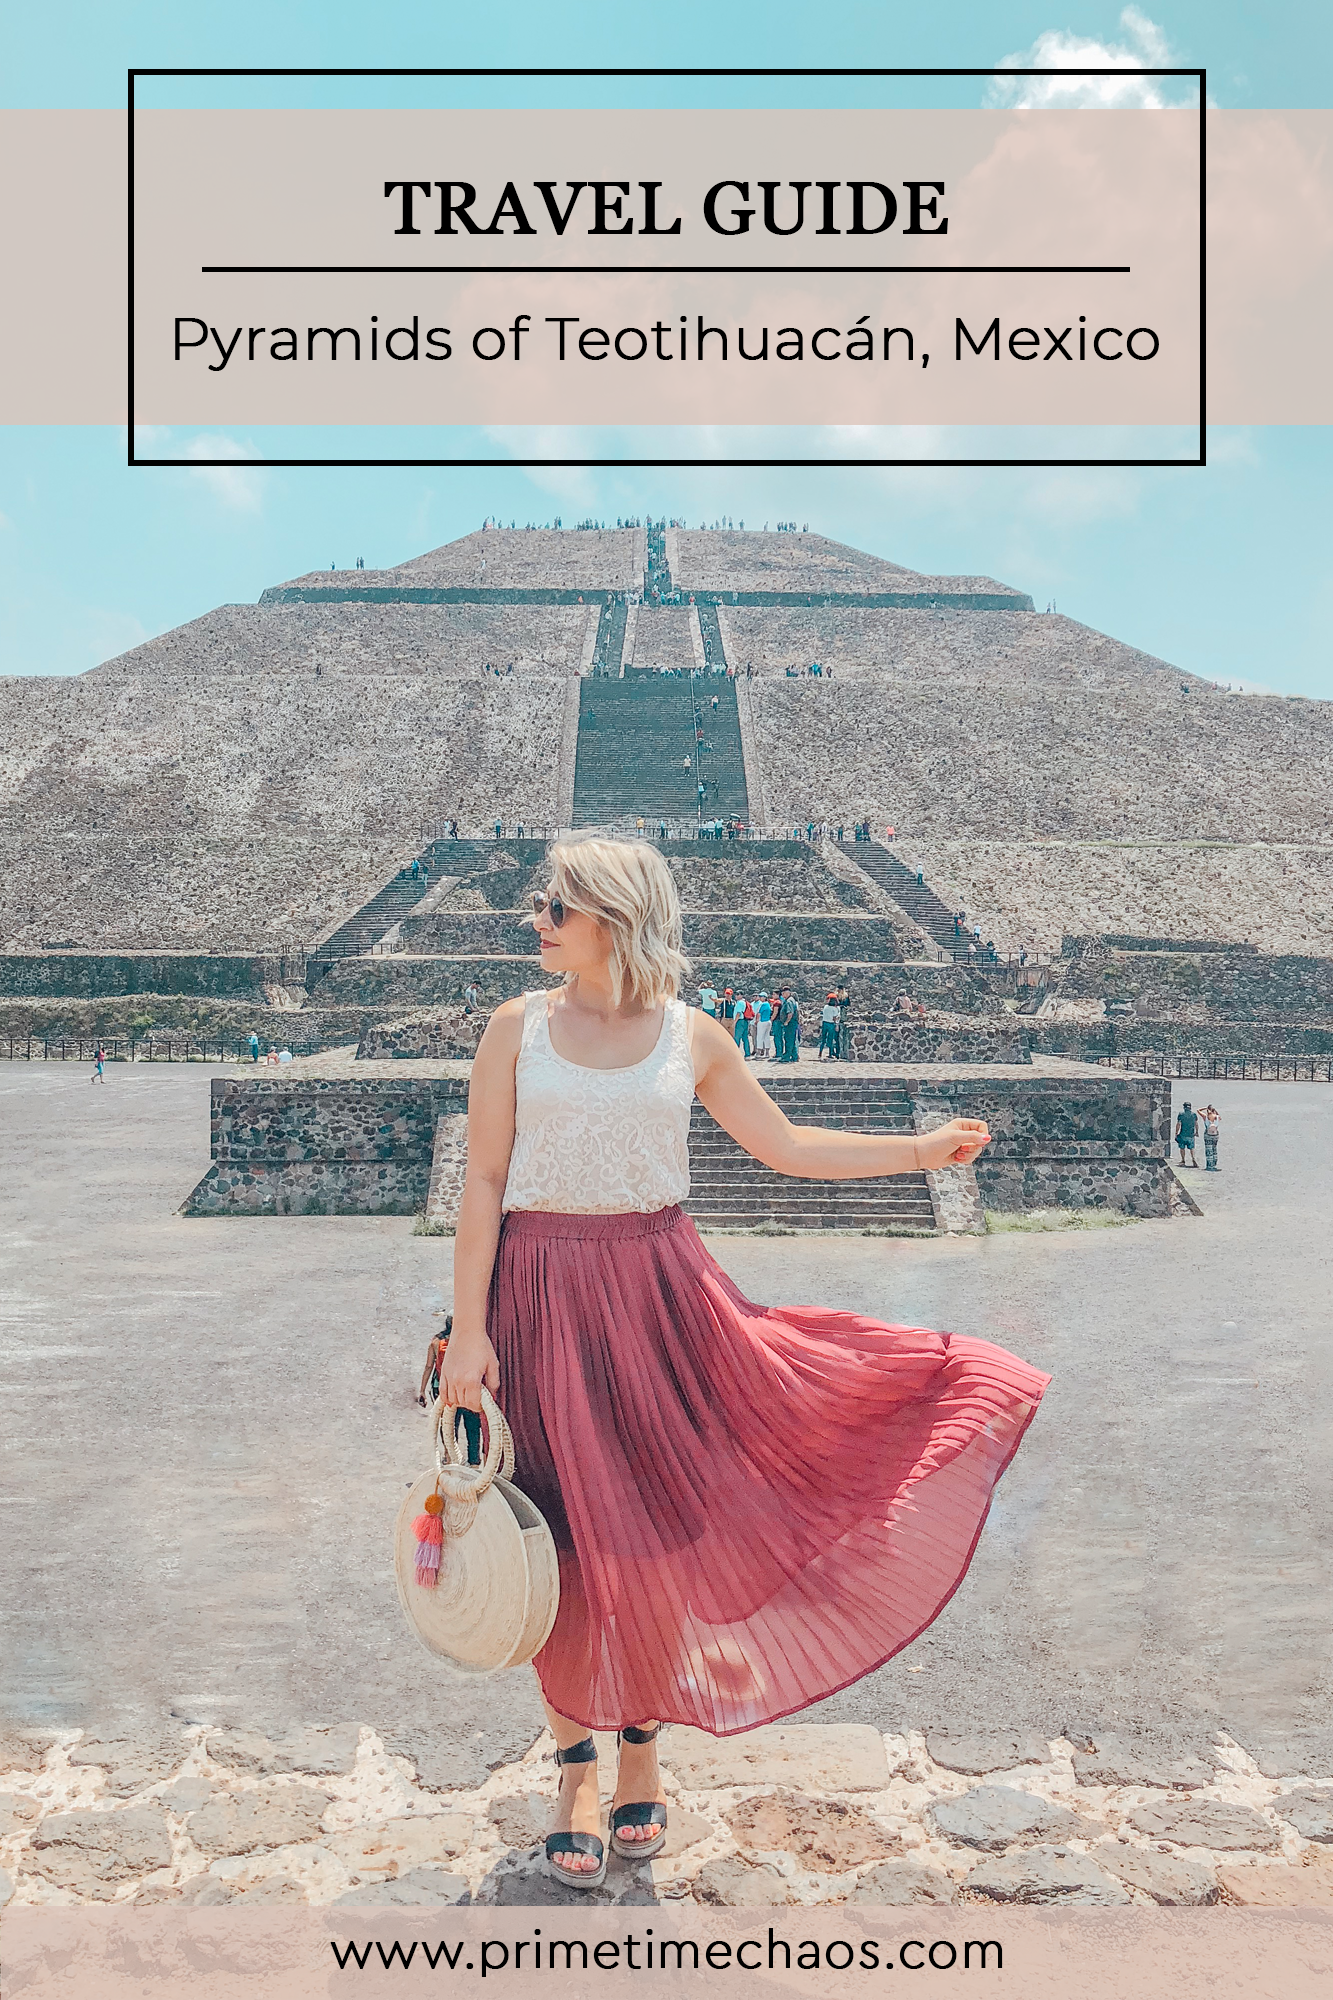 primetimechaos pinterest travel guide mexico pyramids